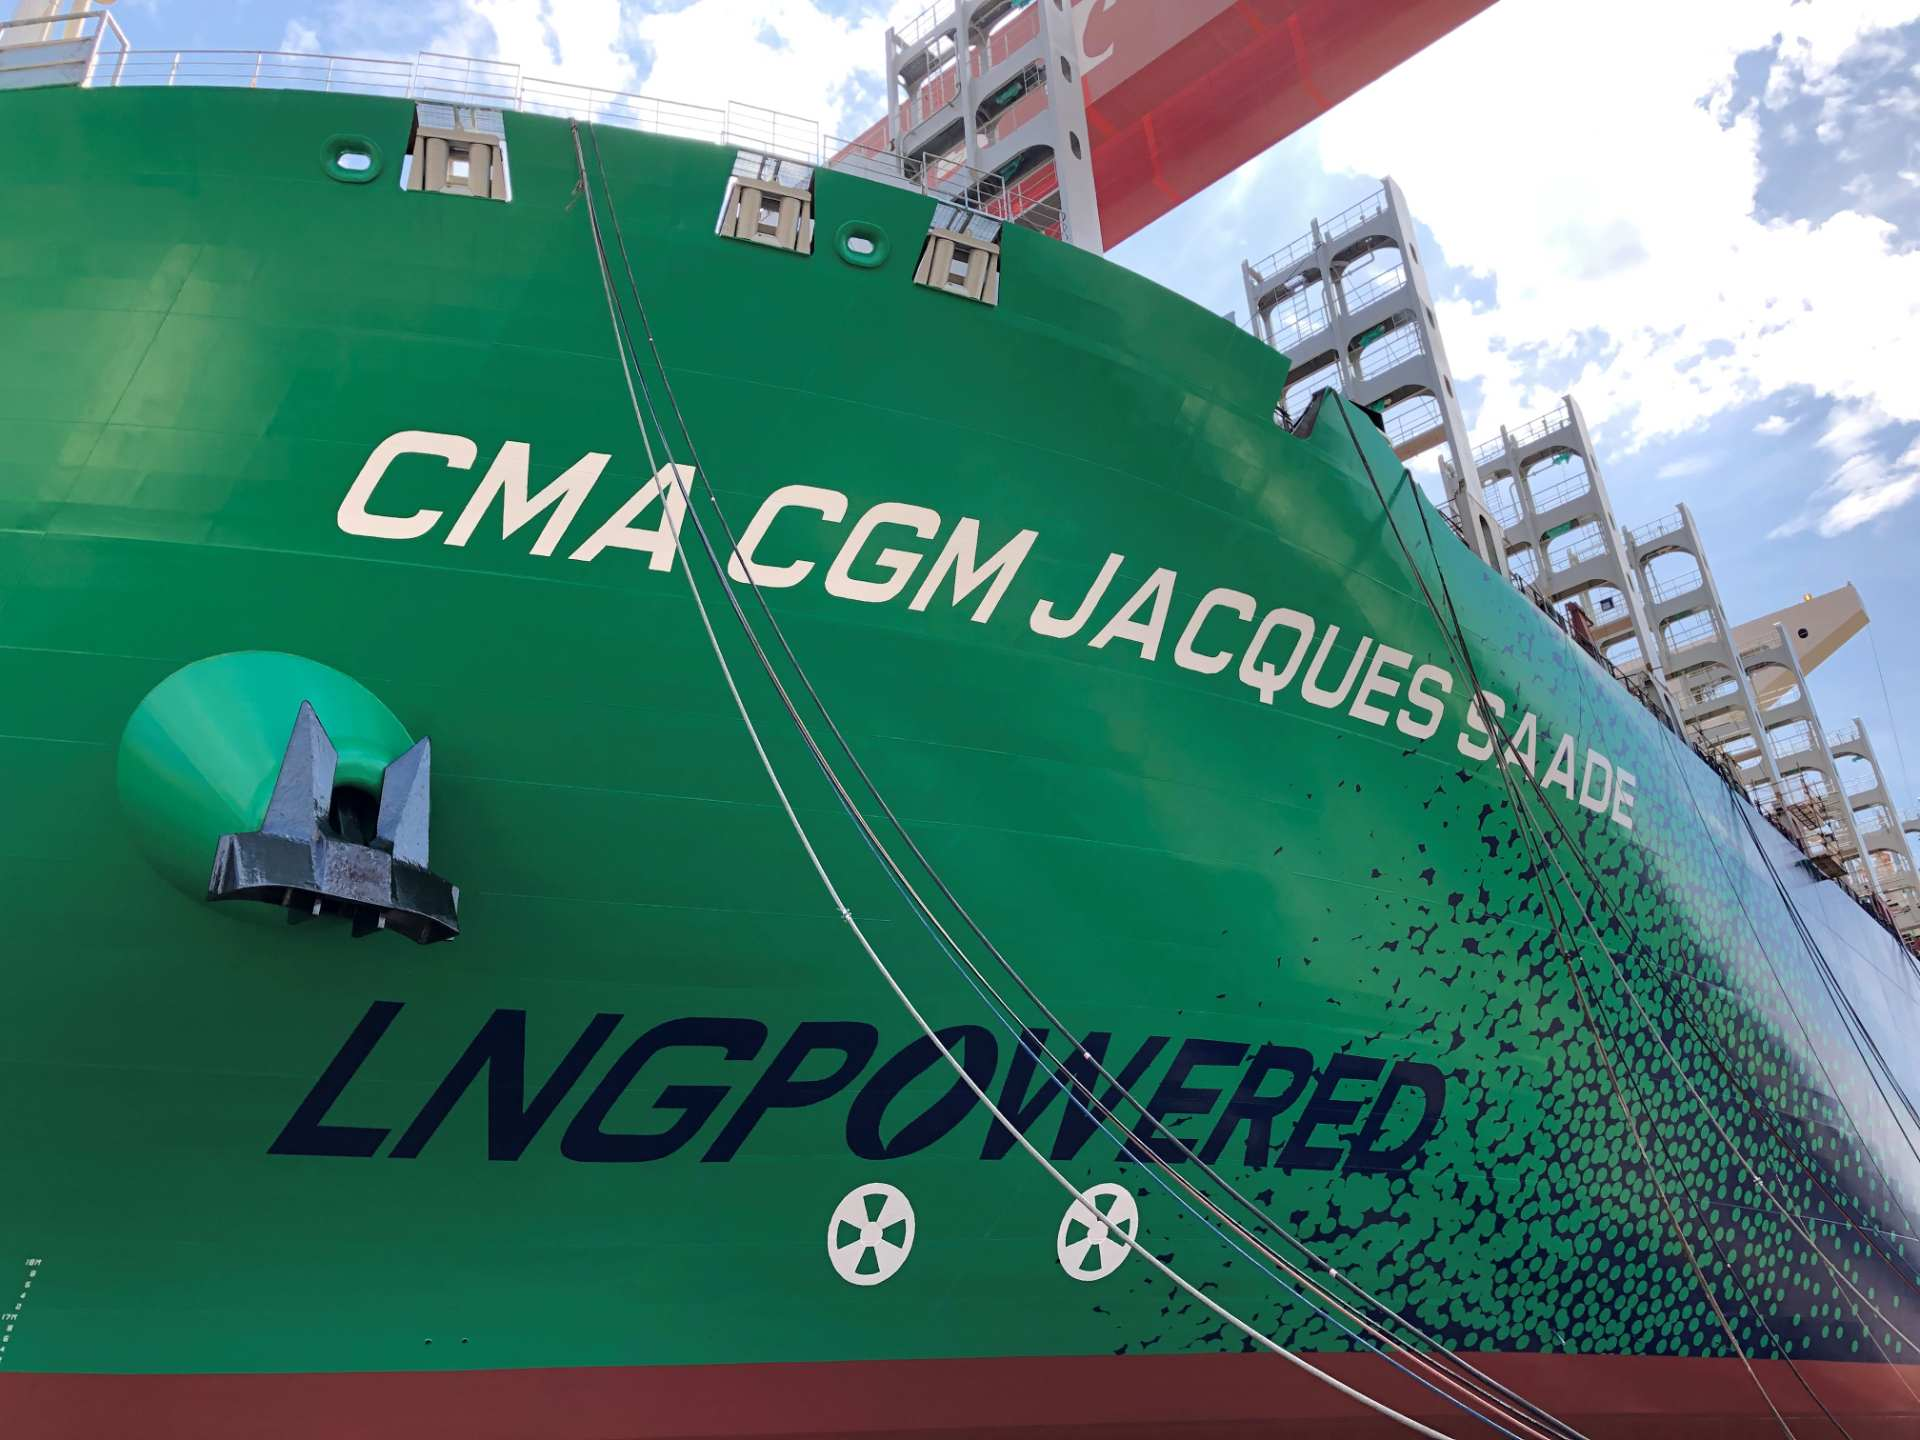 World Premiere: Launching of the World's Largest LNG-Powered Containership and Future CMA CGM Group Flagship